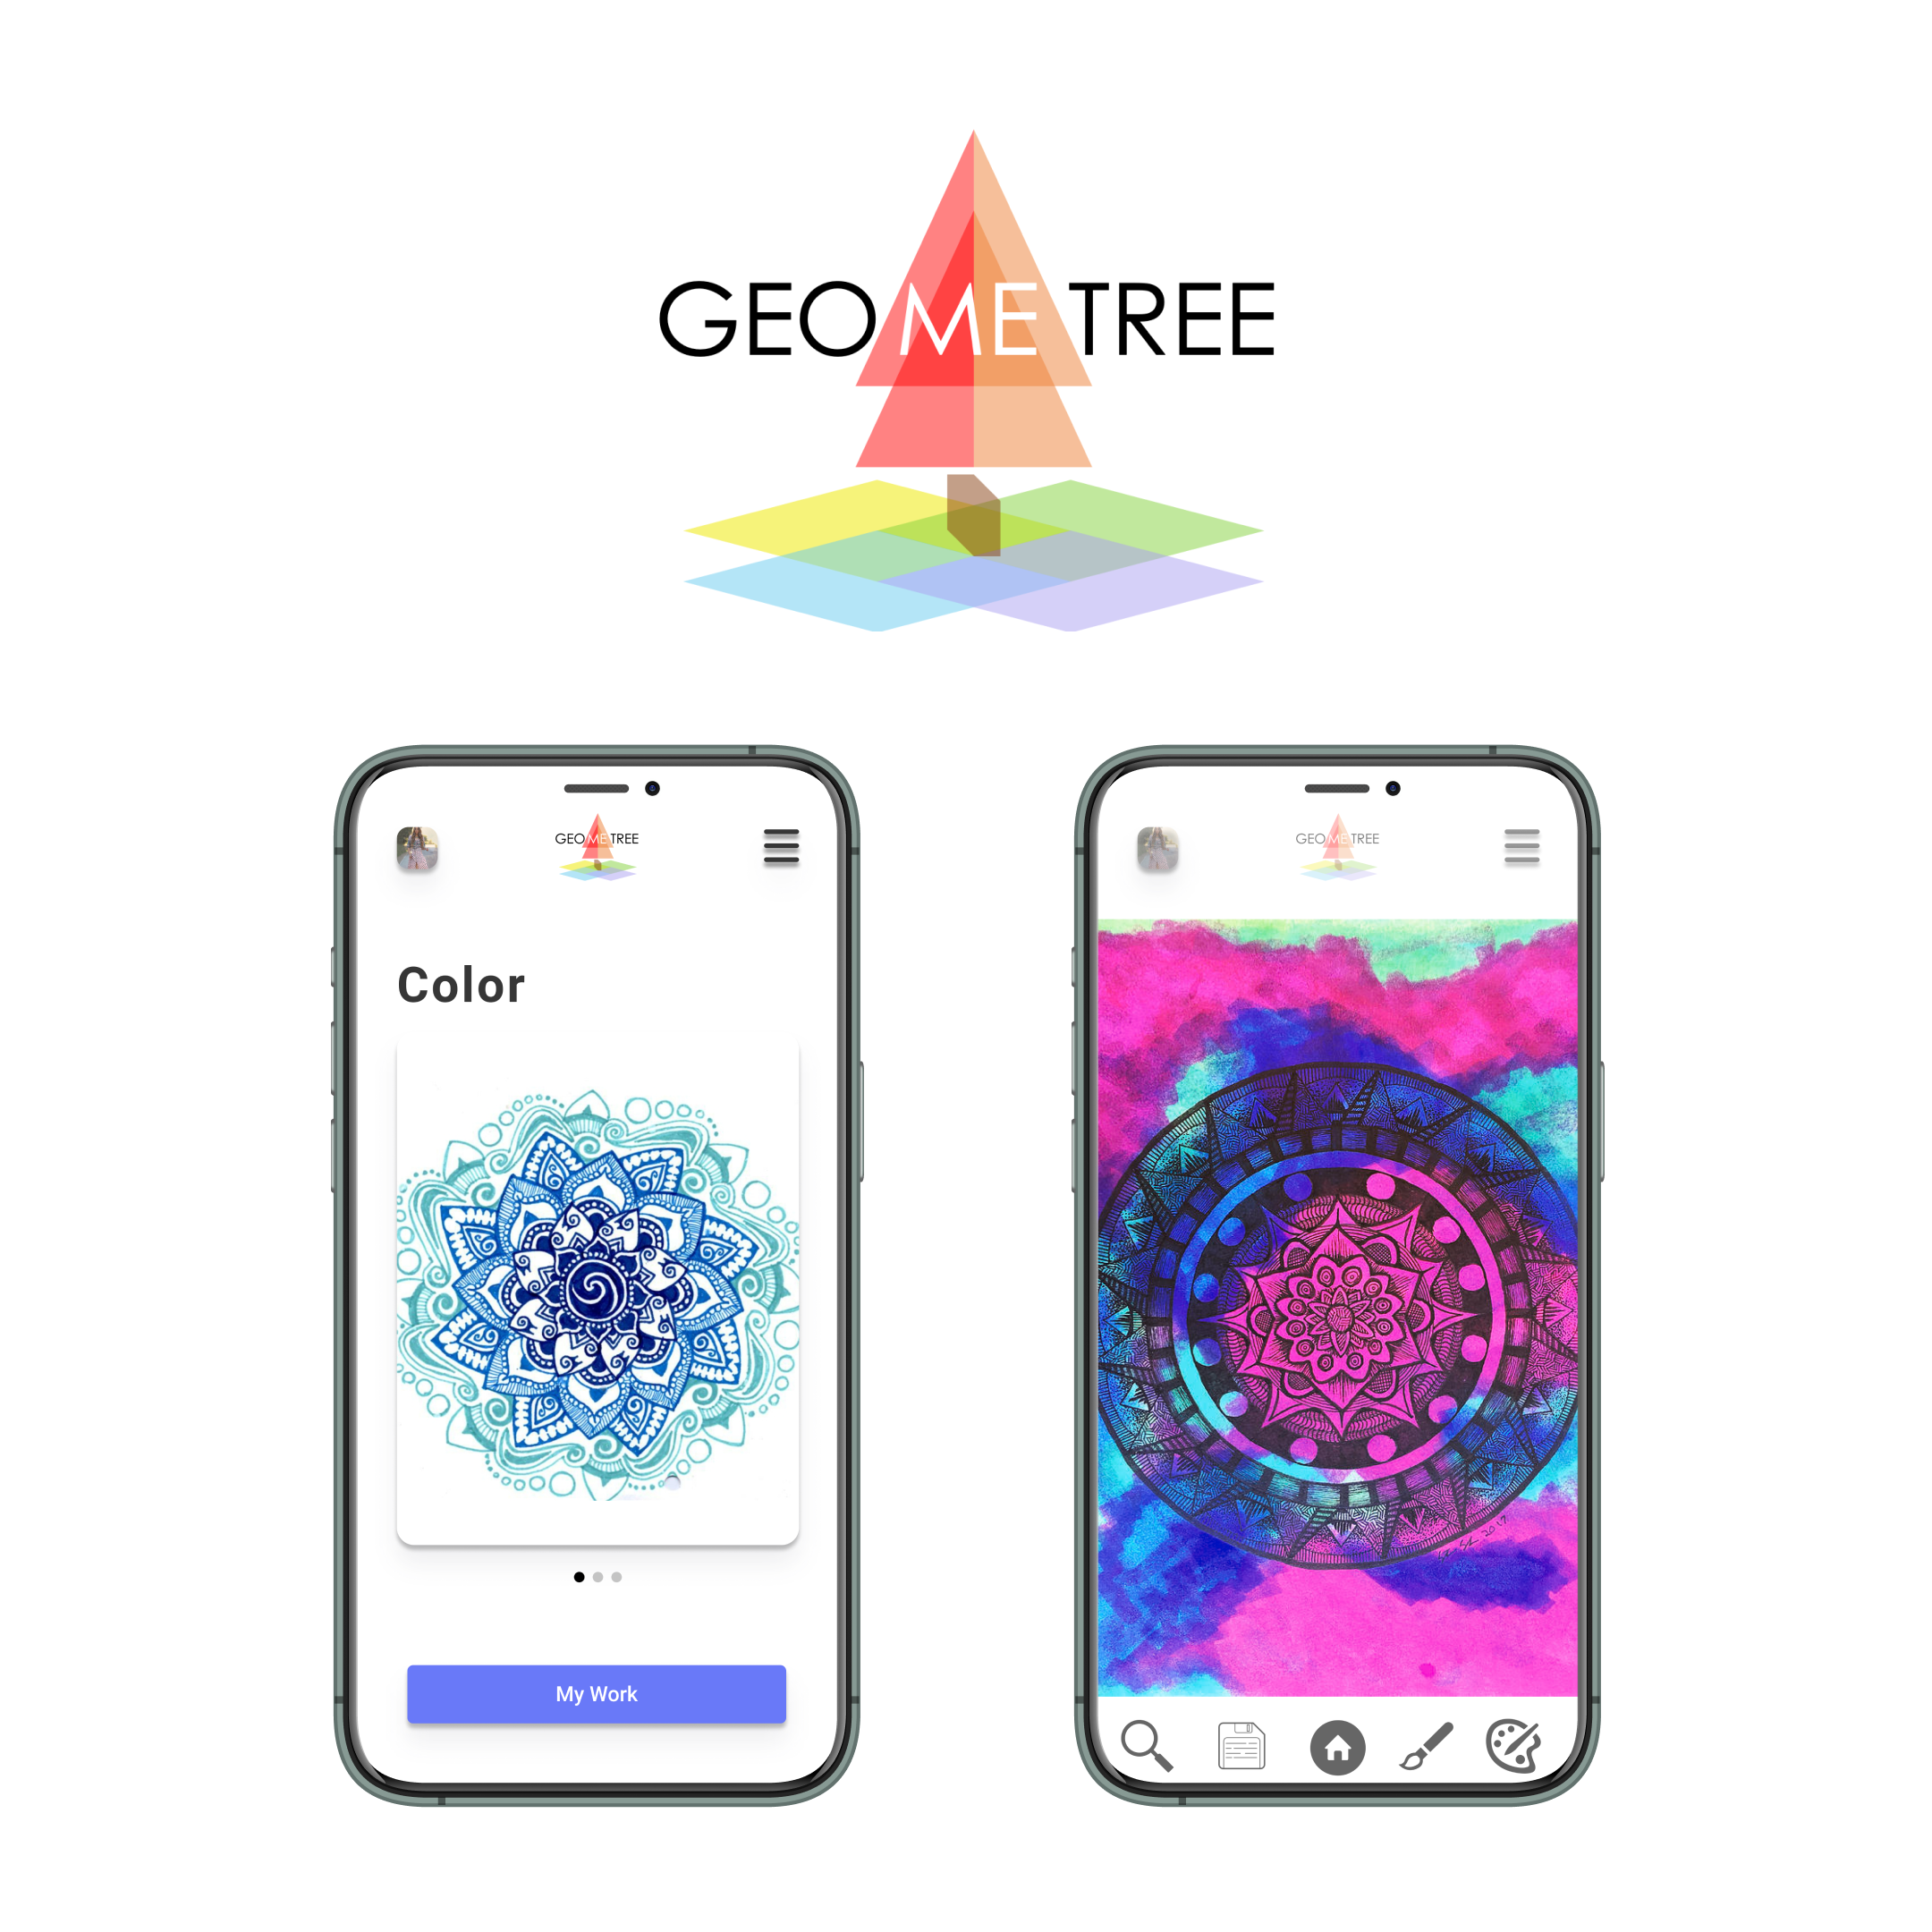 GEOMETREE: Coloring relaxation app